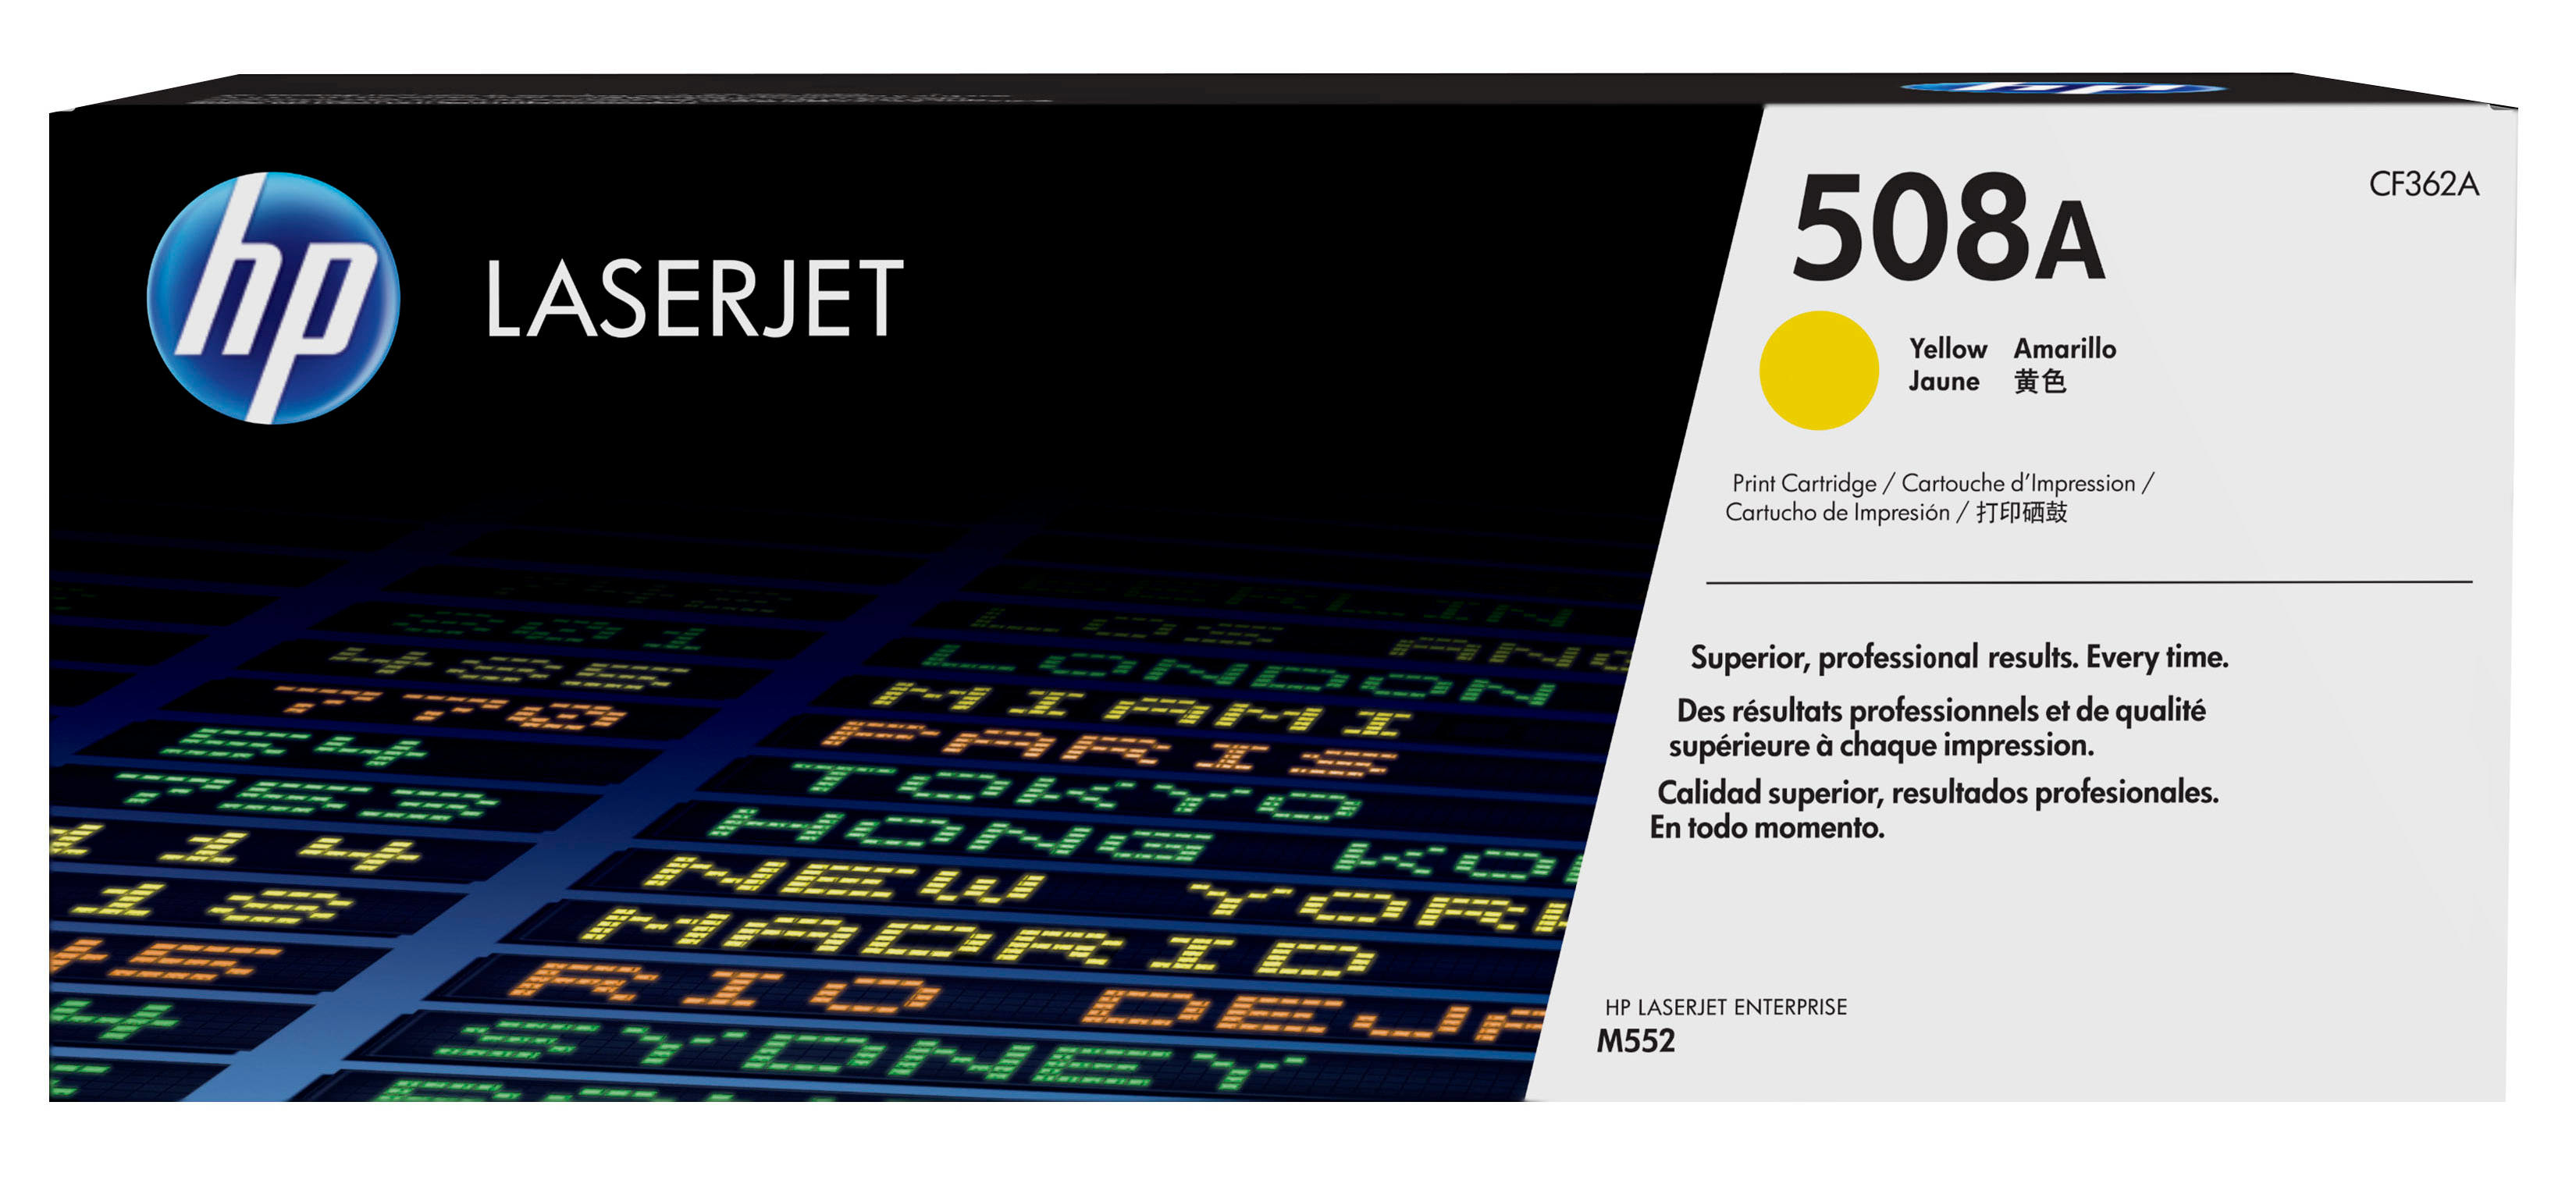 HP 508A - CF362A - 1 X Yellow - Toner Cartridge - For Color LaserJet Enterprise M552dn, M553dn, M553n, M553x CF362A - C2000